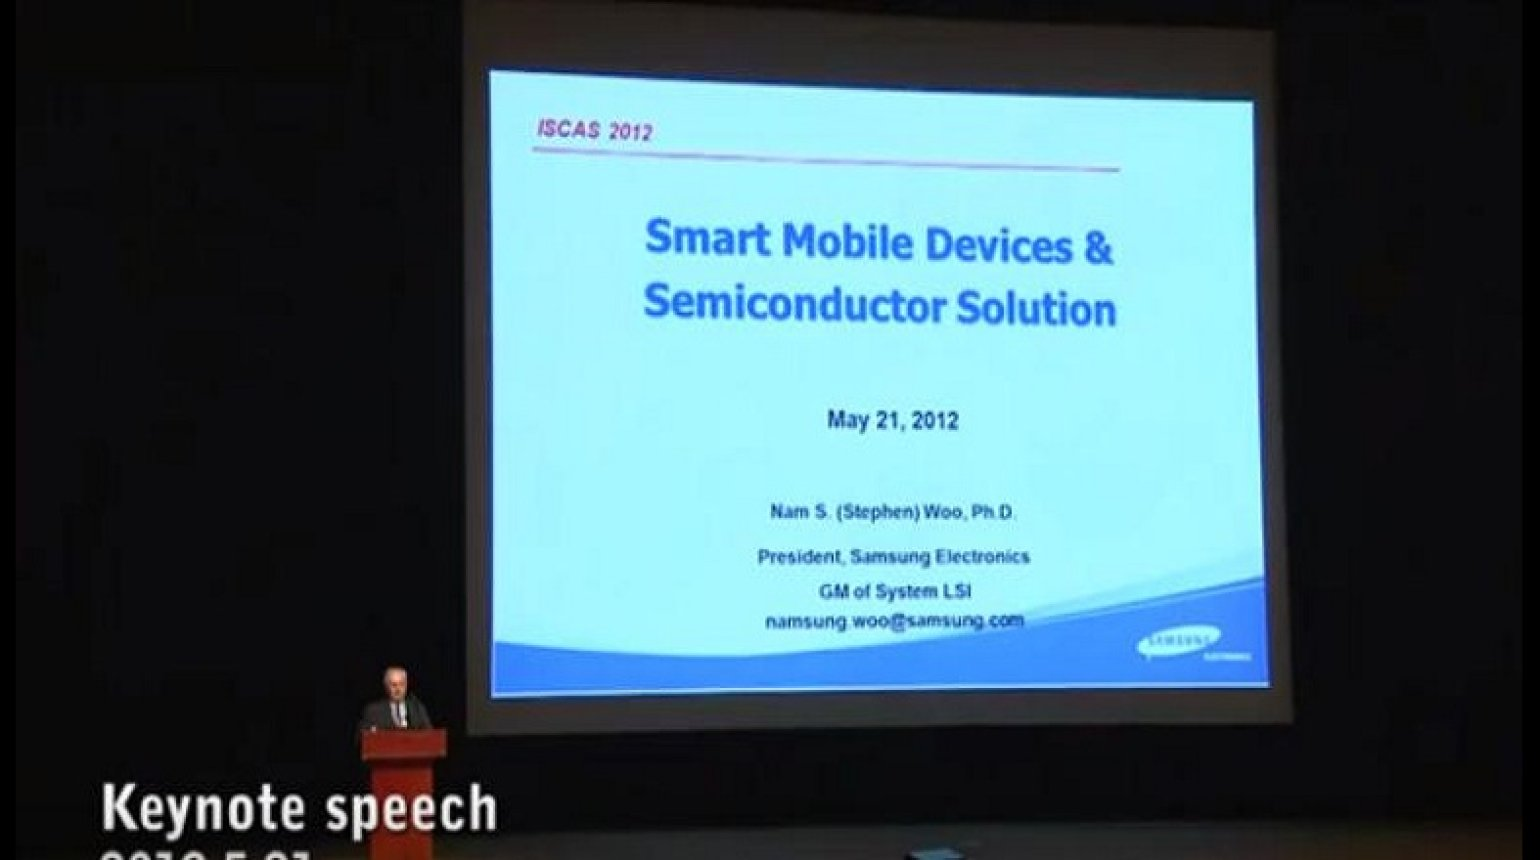 Smart Mobile Devices and Semiconductor Solution